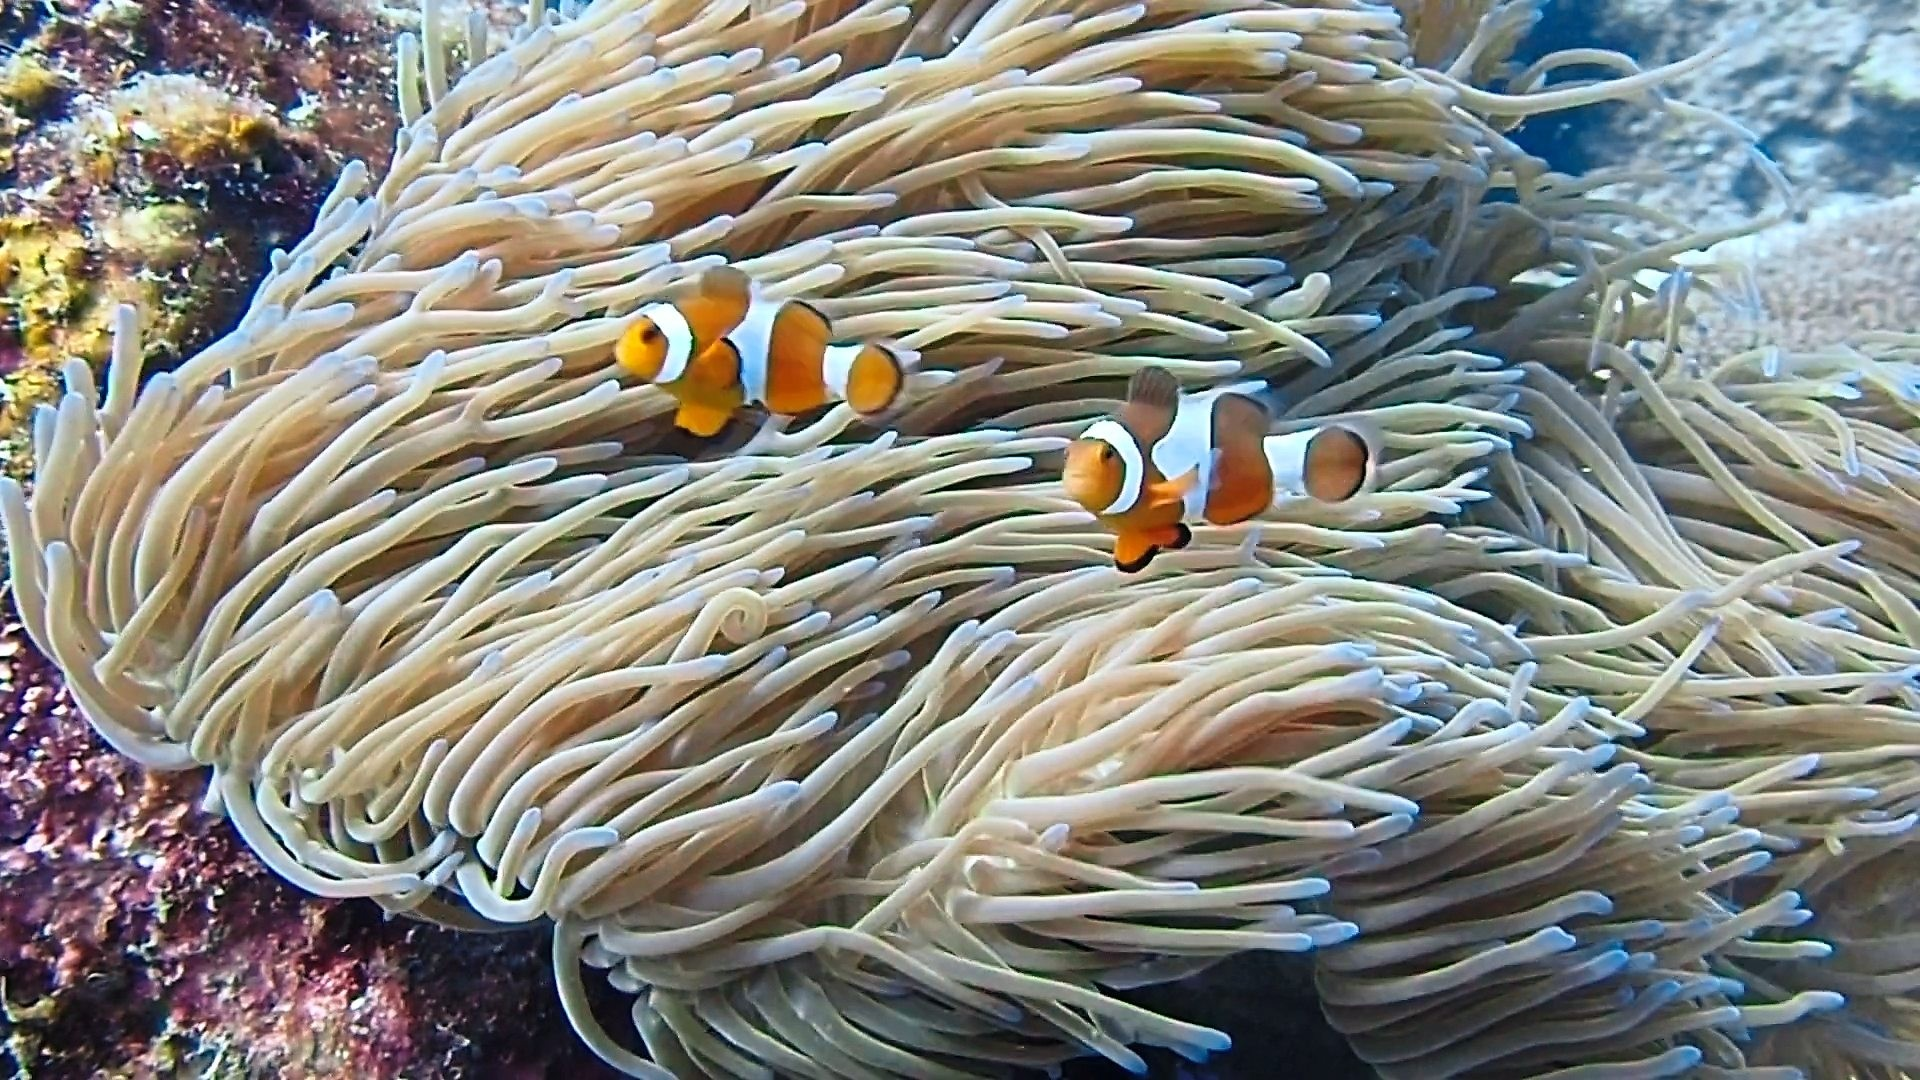 Plenty of clownfish can be found here. — Photos: ANG KUAN WEI